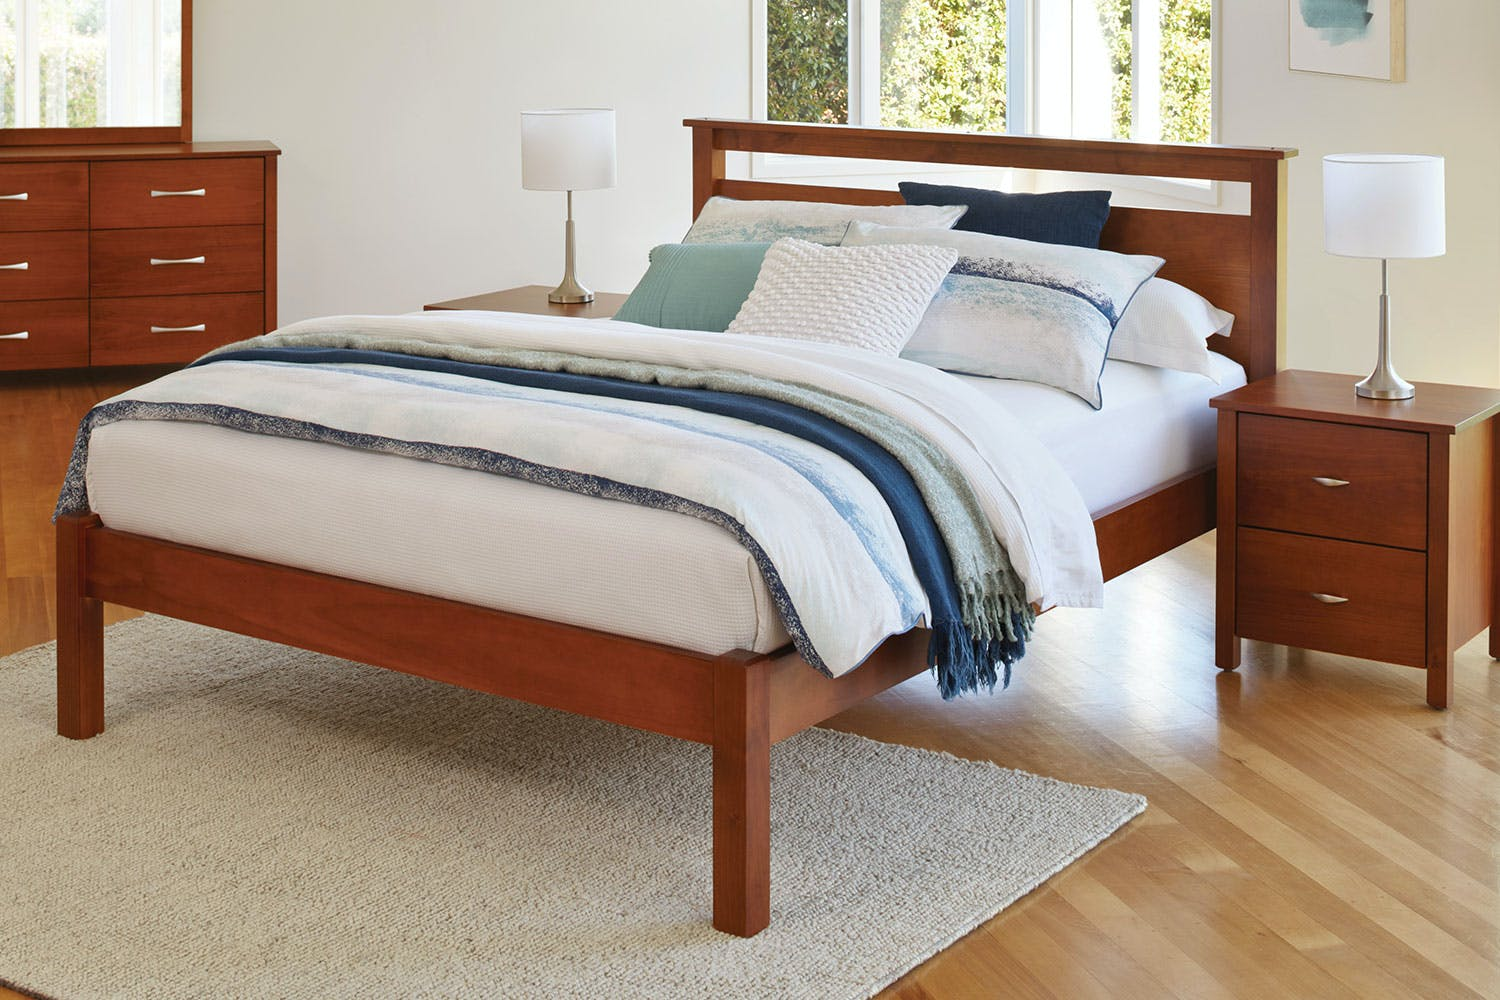 Tillsdale Queen Bed Frame By Coastwood Furniture | Harvey Norman New Zealand